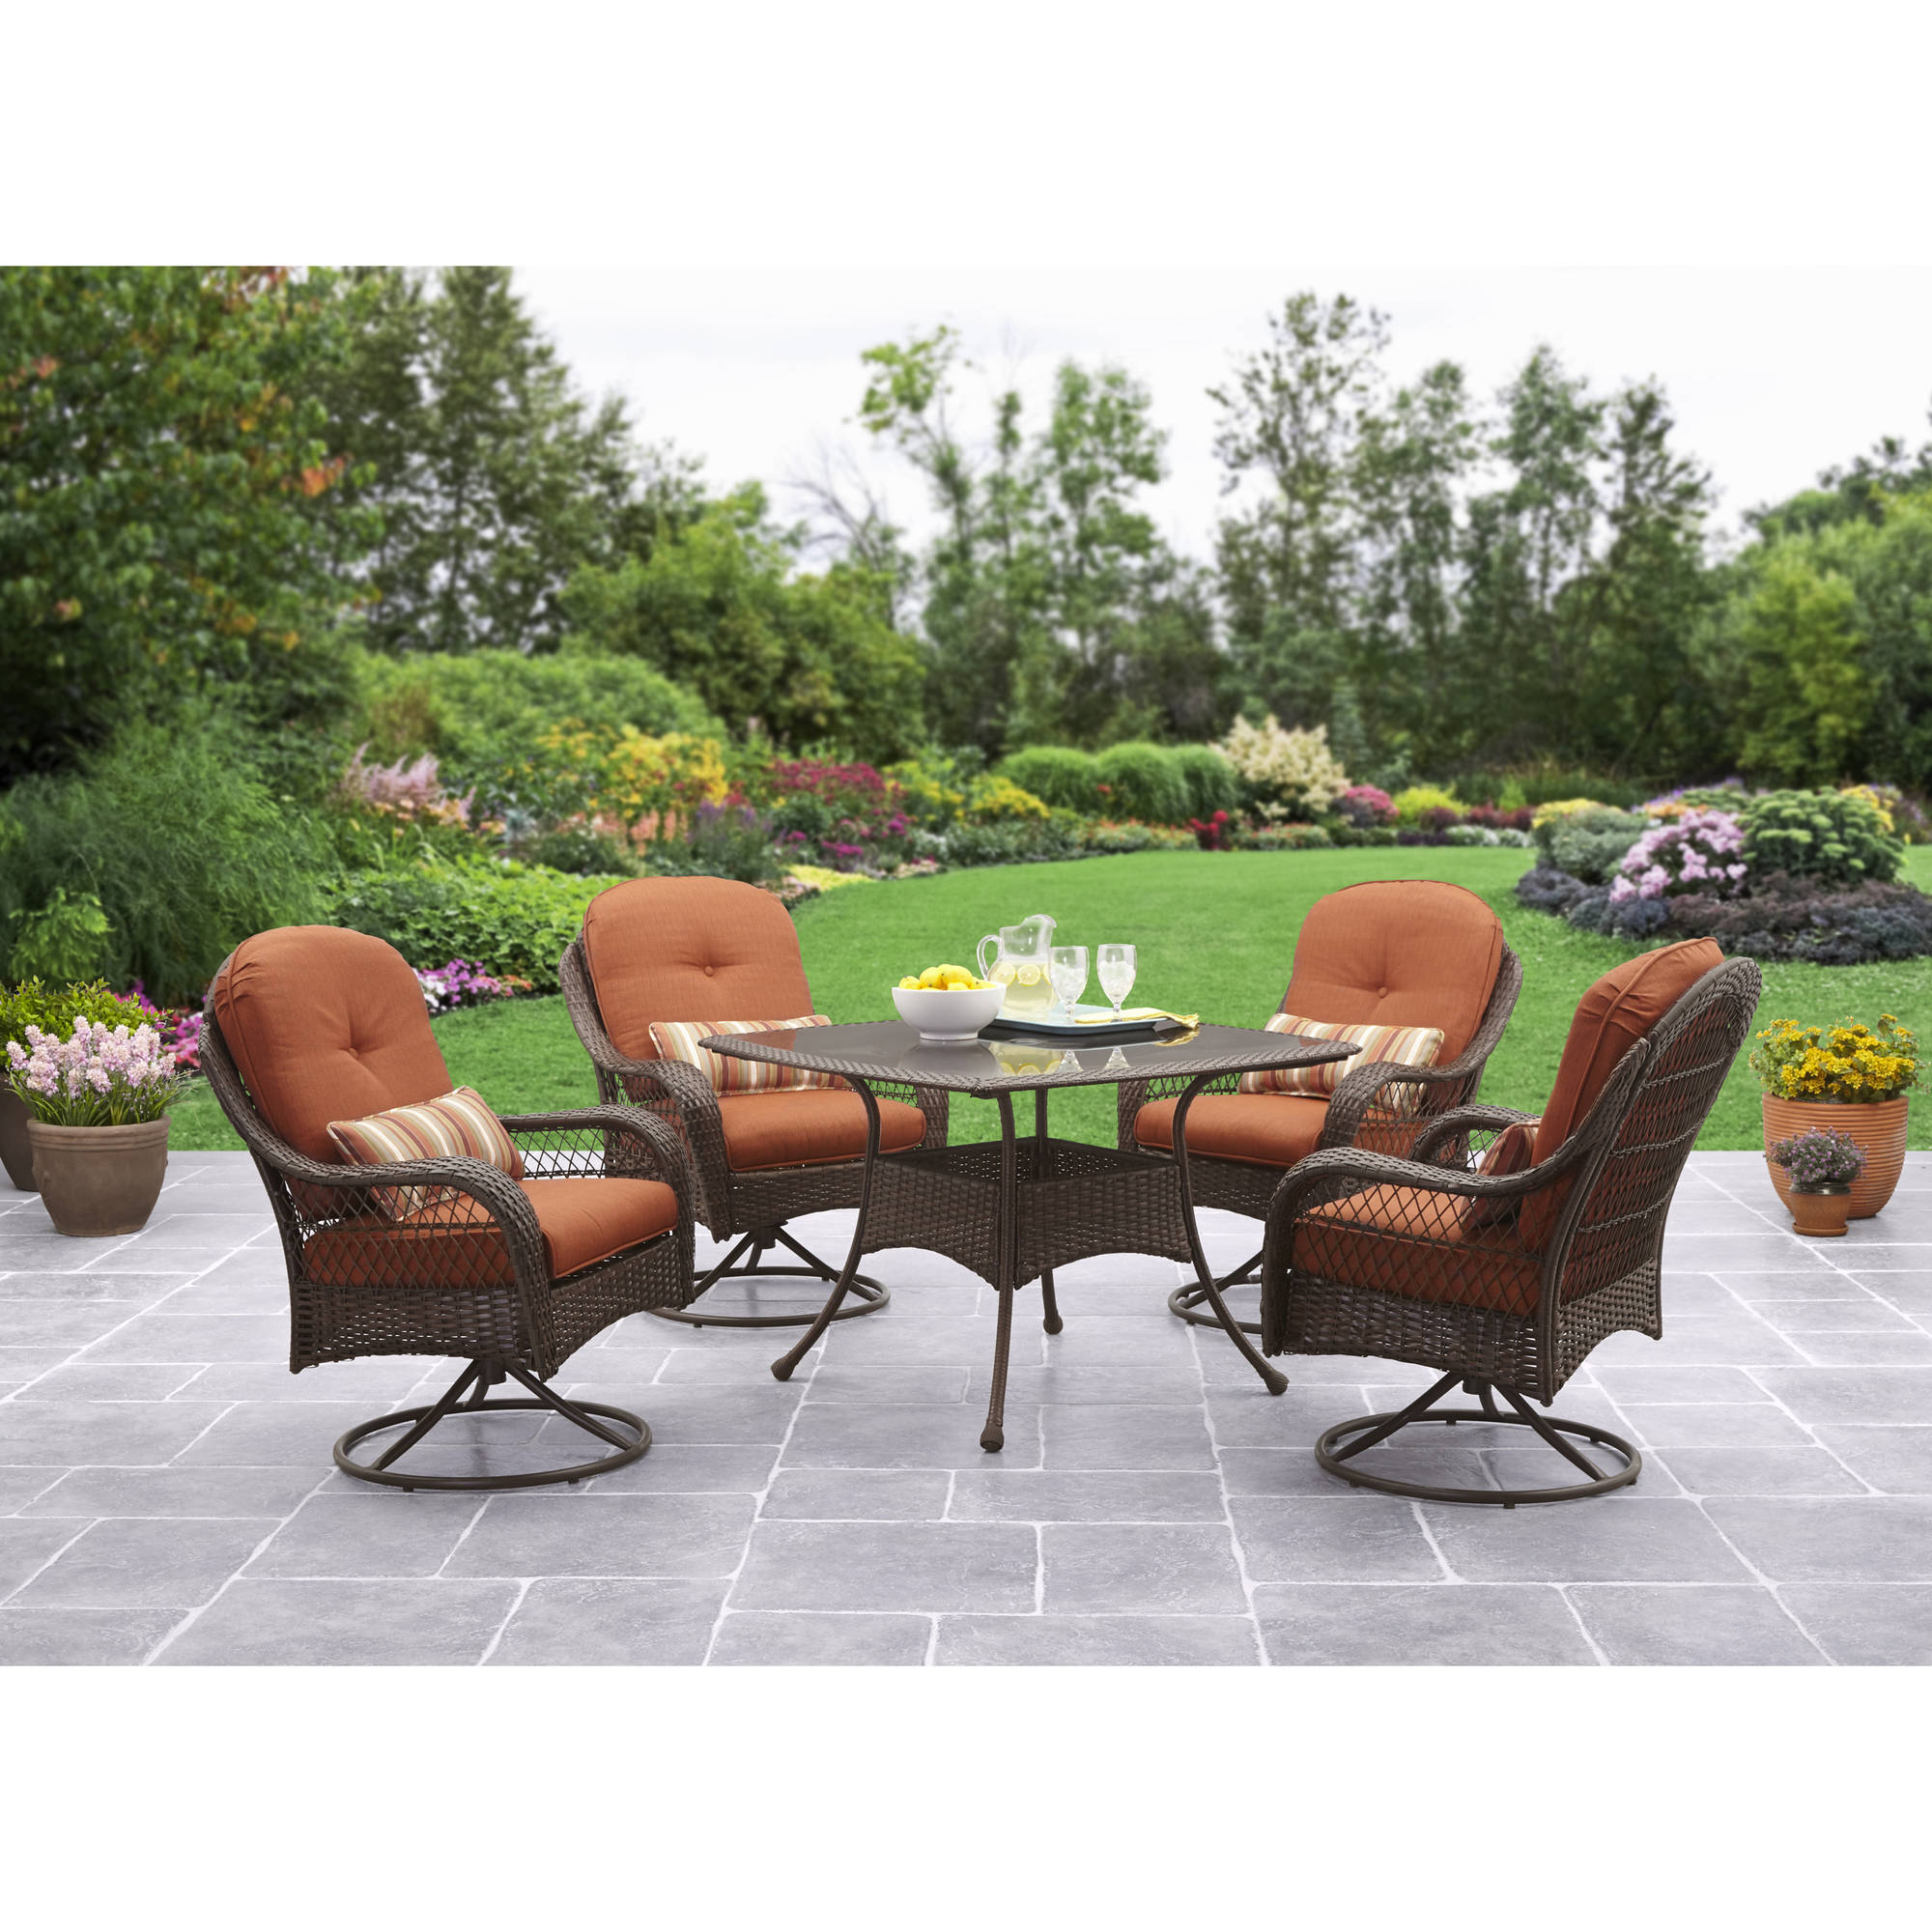 Better Homes and Gardens Azalea Ridge 5 Piece Outdoor Dining Set